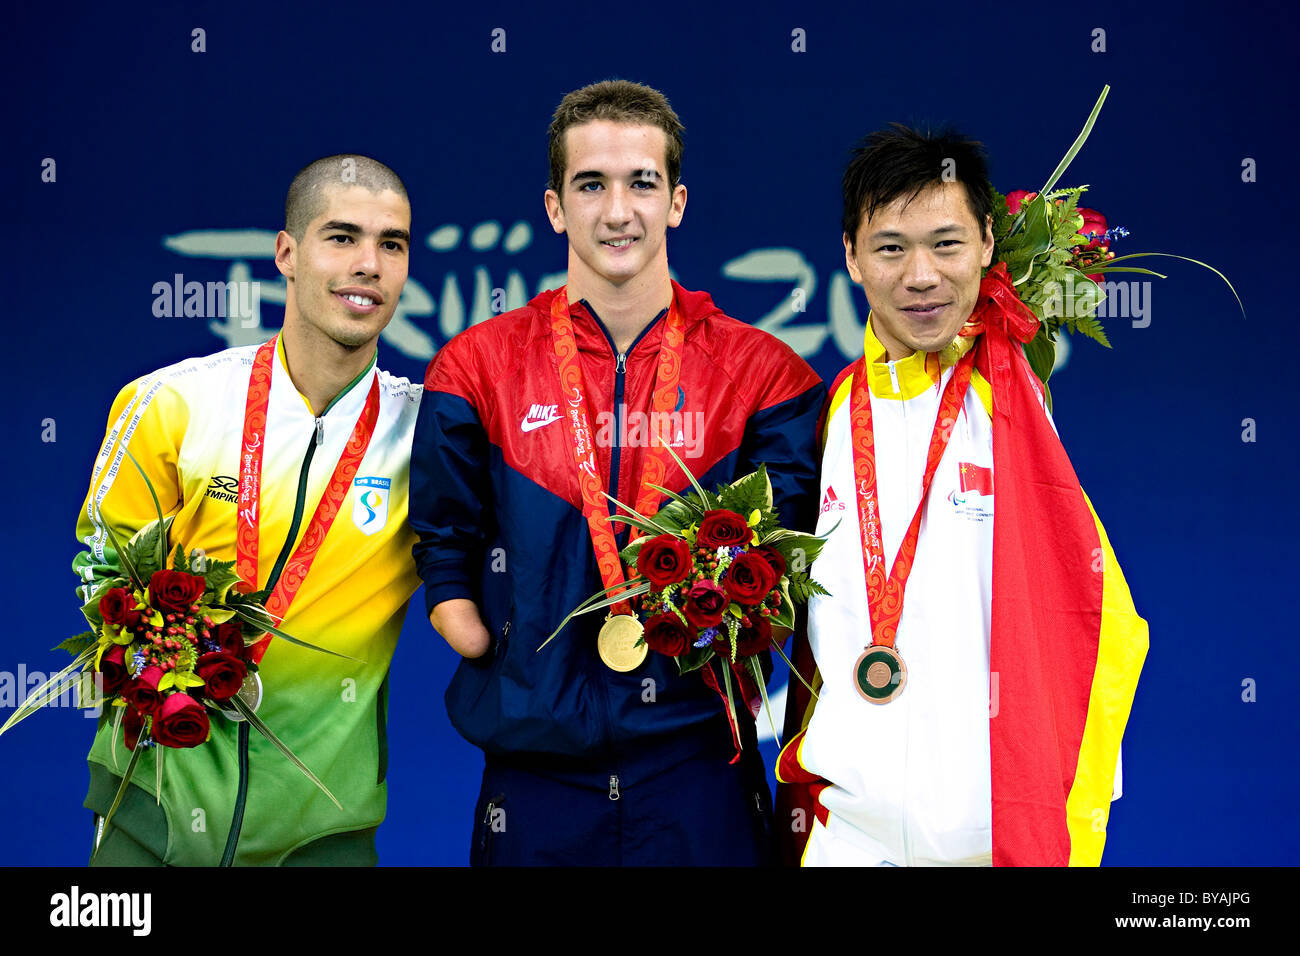 Medallists in the men's 50m Butterfly Roy Perkins USA - Gold, Daniel Dias Brazil - silver, Junquan He China - Stock Image